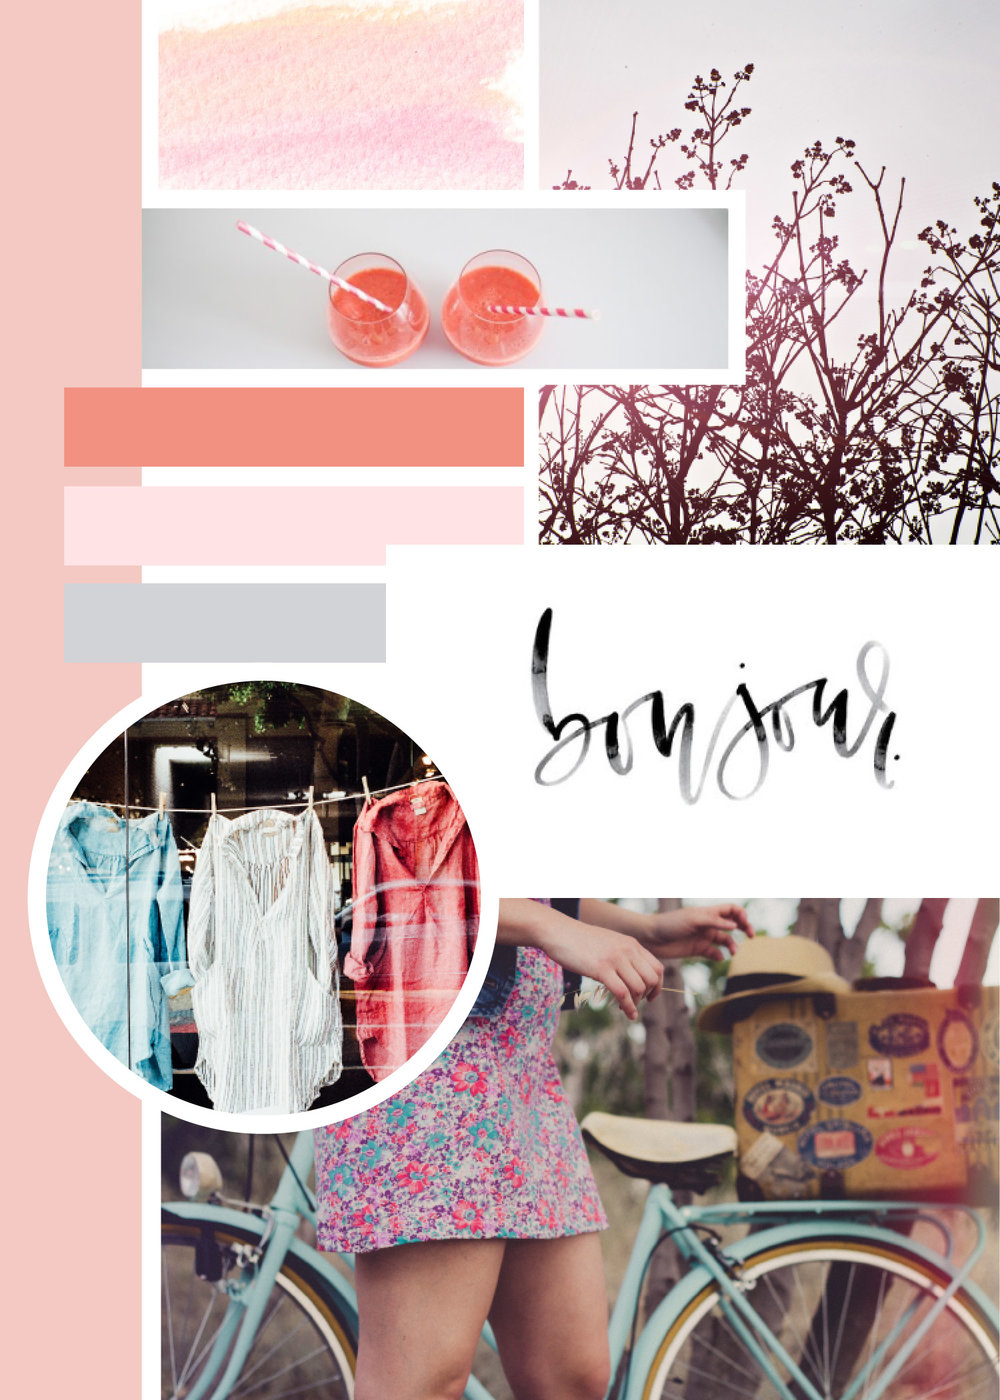 How To Create A Mood Board To Inspire Your Branding